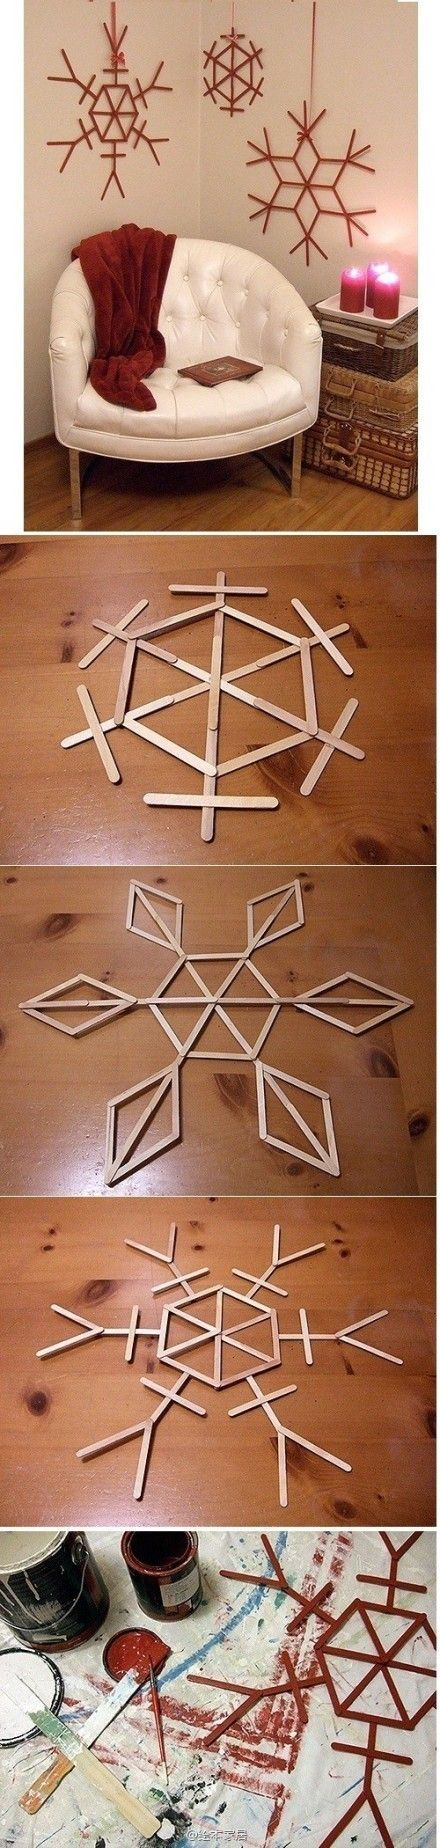 Popsicle stick snowflakes. Love these!!!